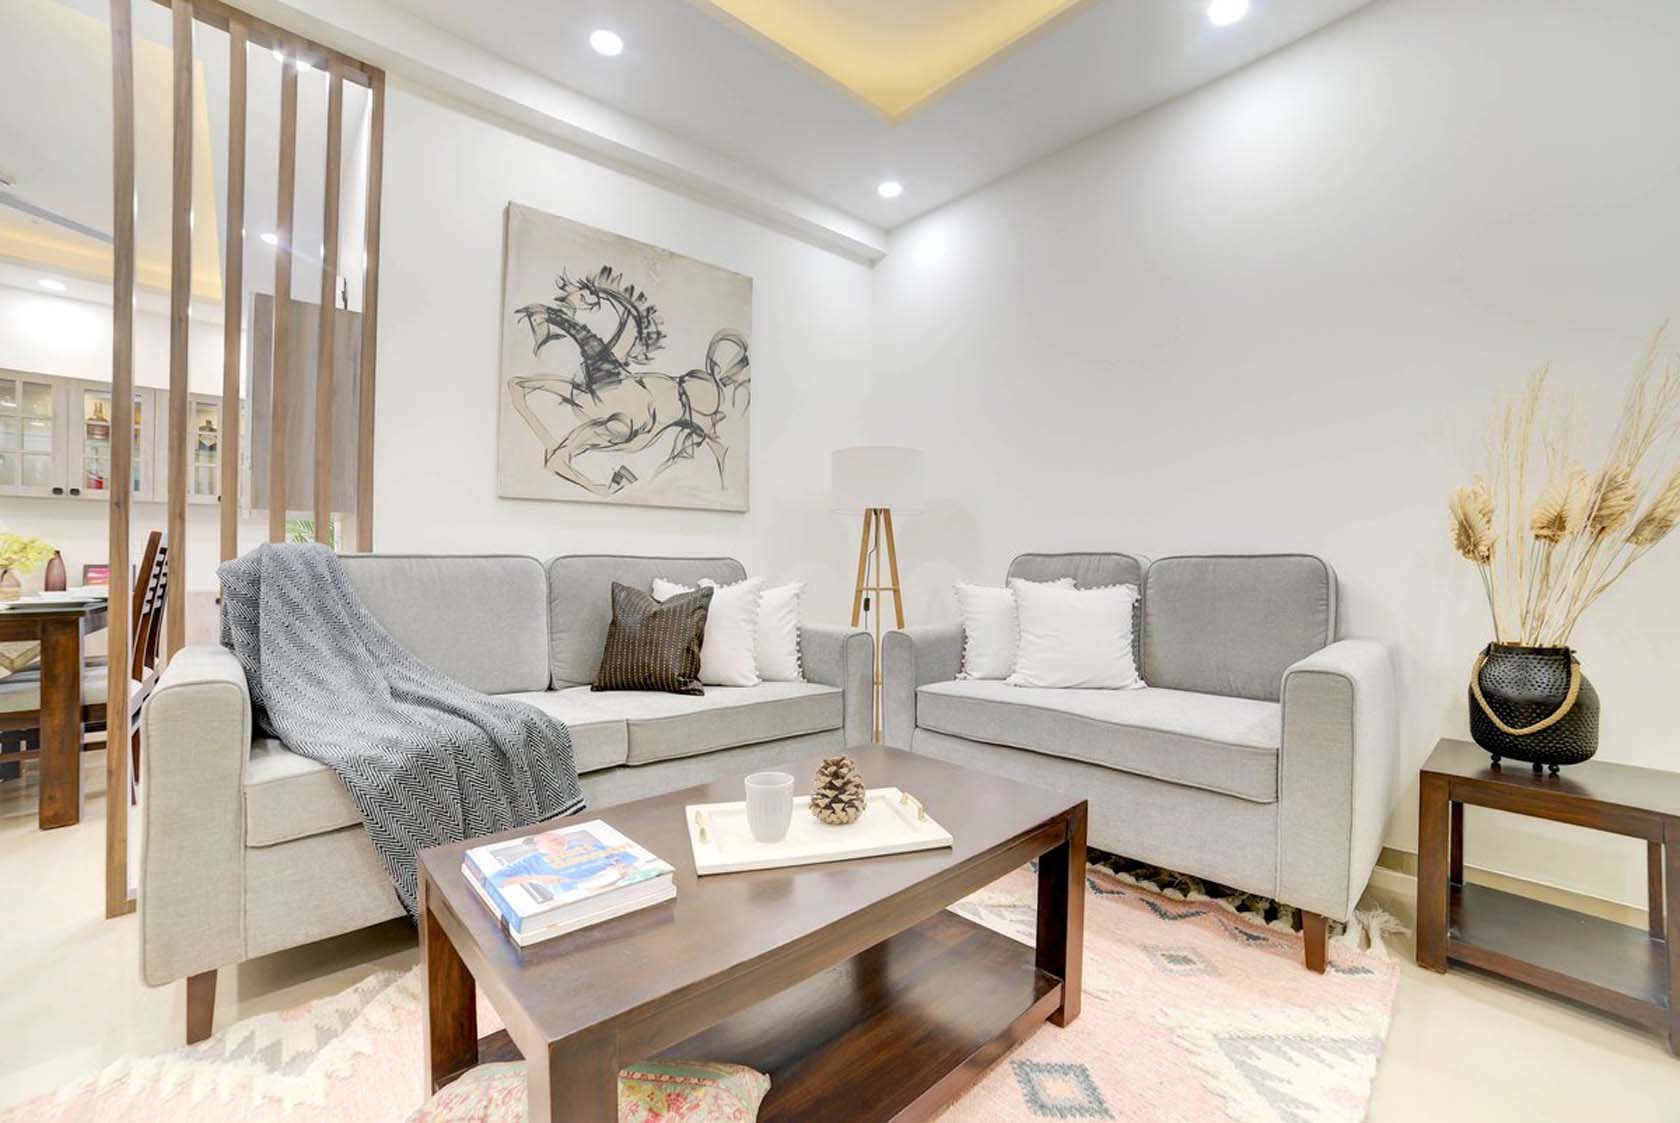 Interiors For A Retirement Home